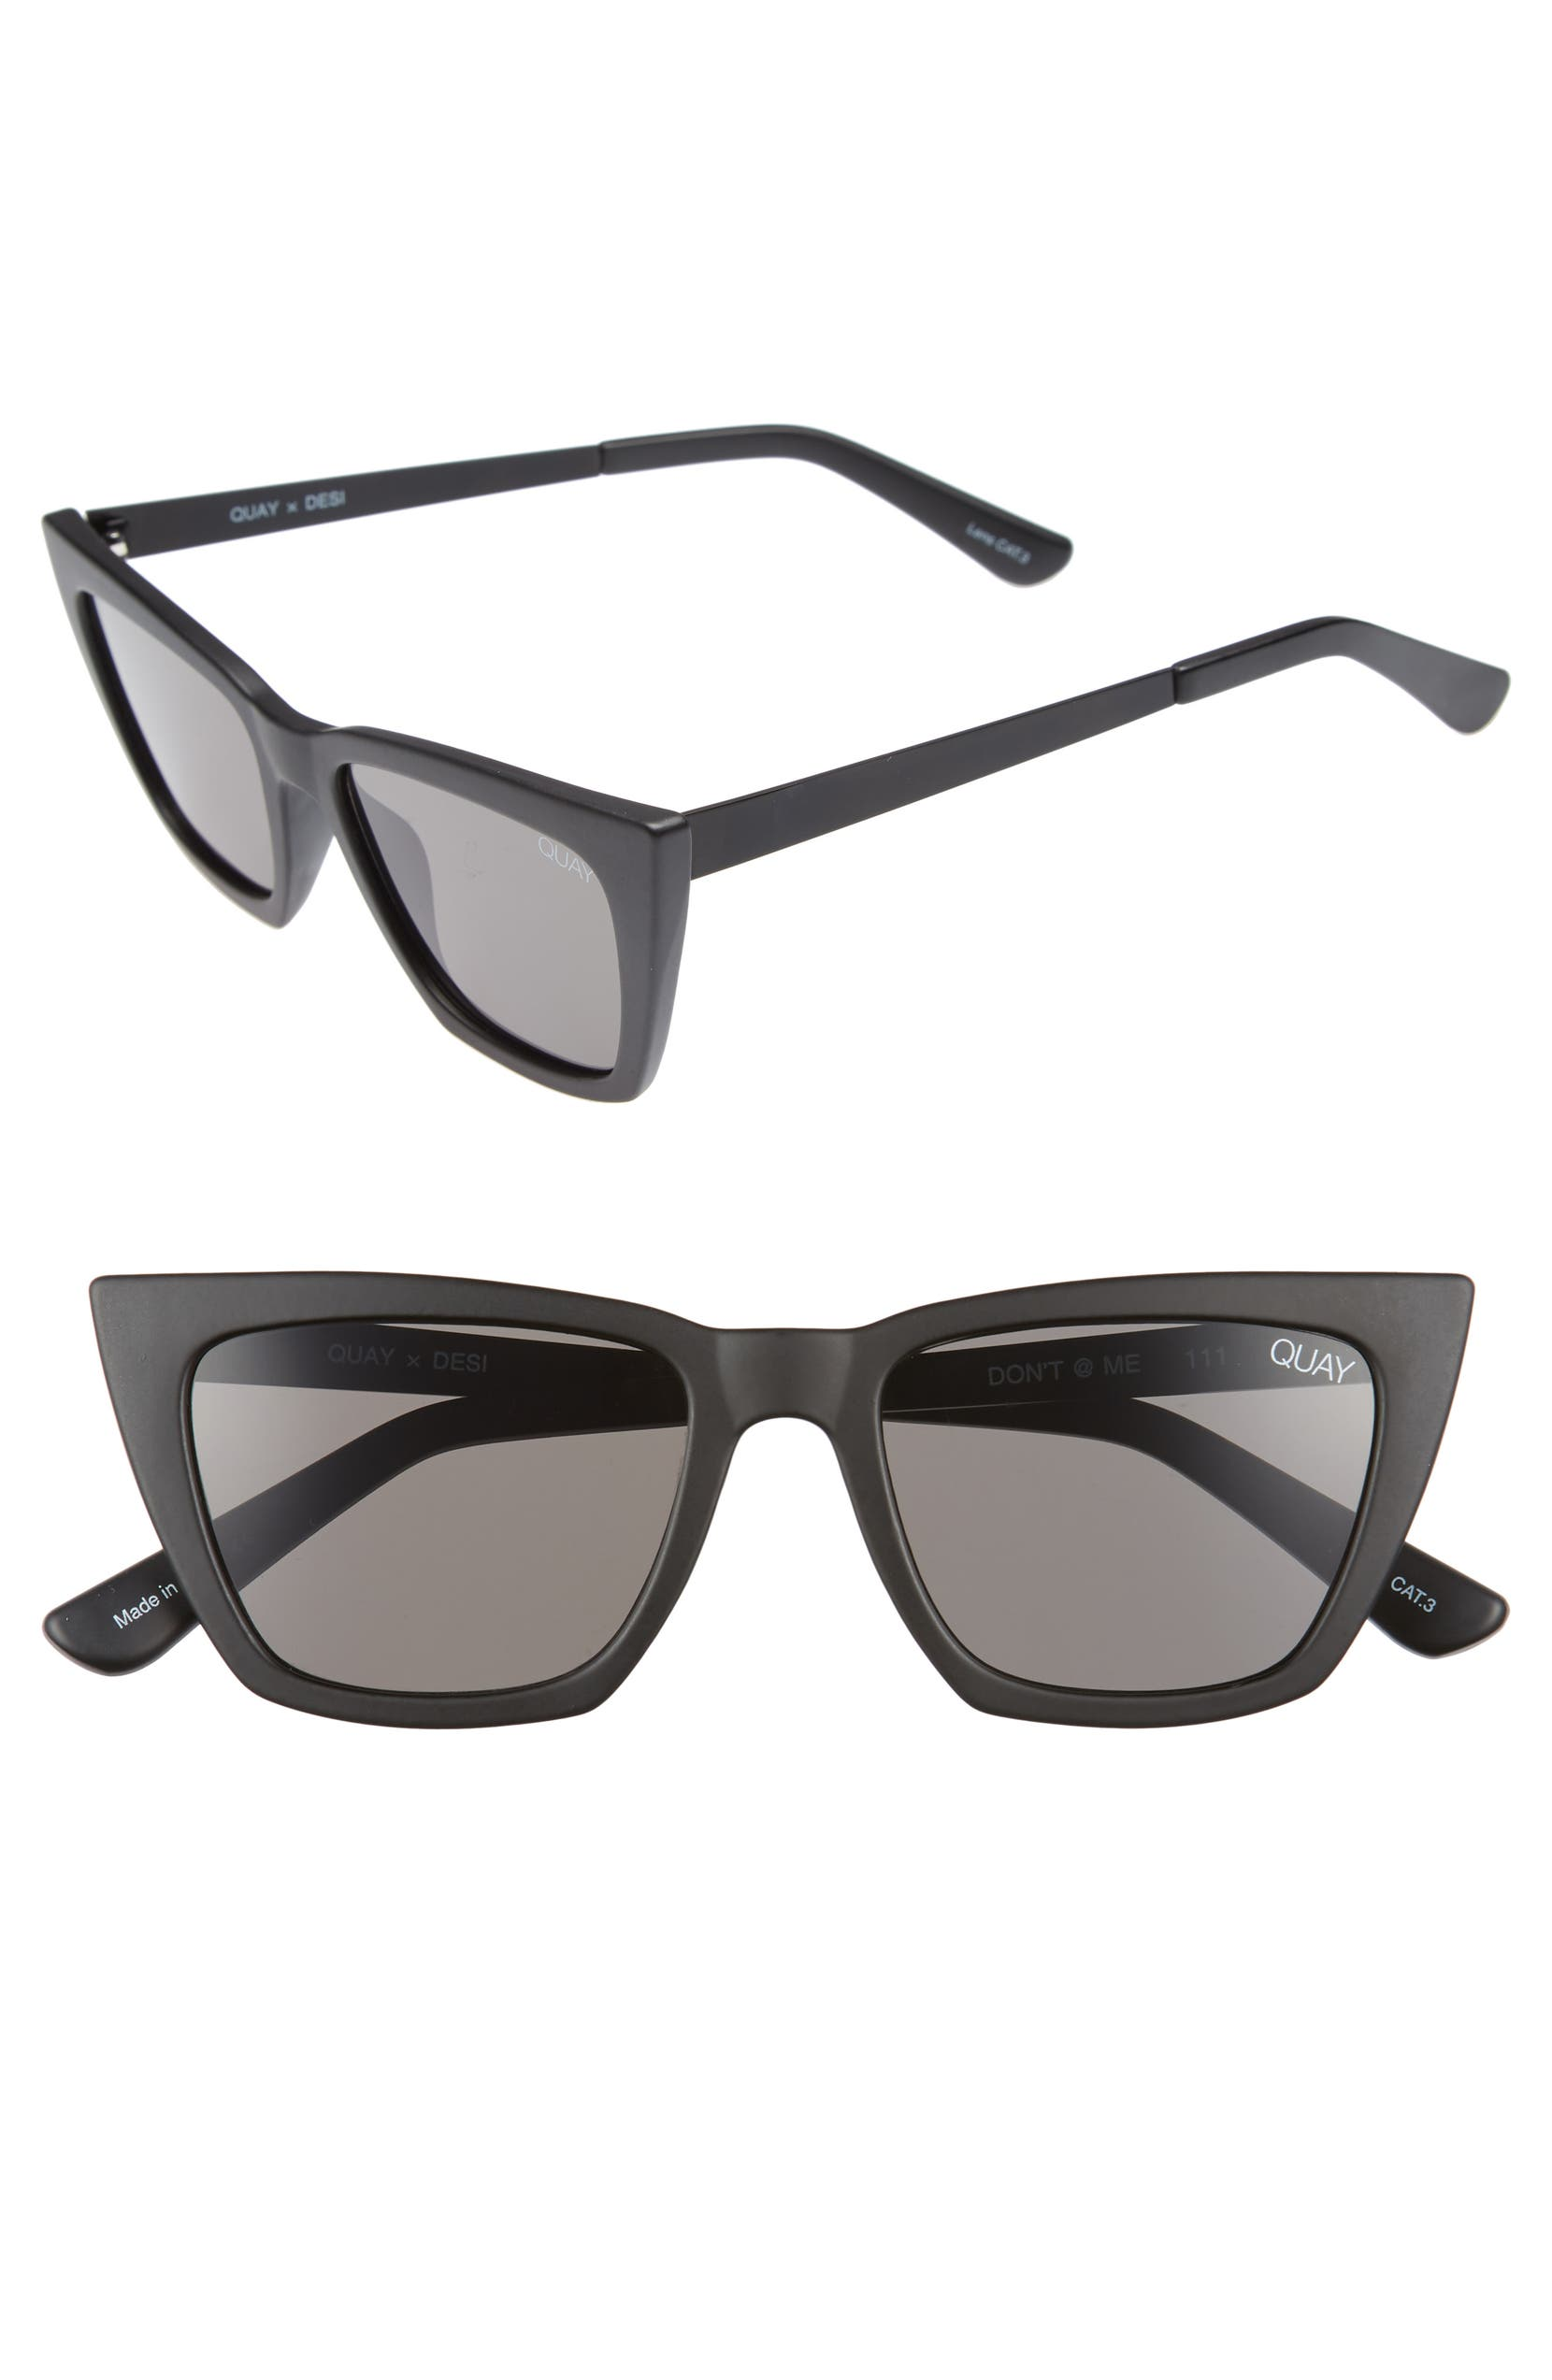 4a17182b602 Quay Australia x Desi Perkins Don t   Me 48mm Cat Eye Sunglasses ...